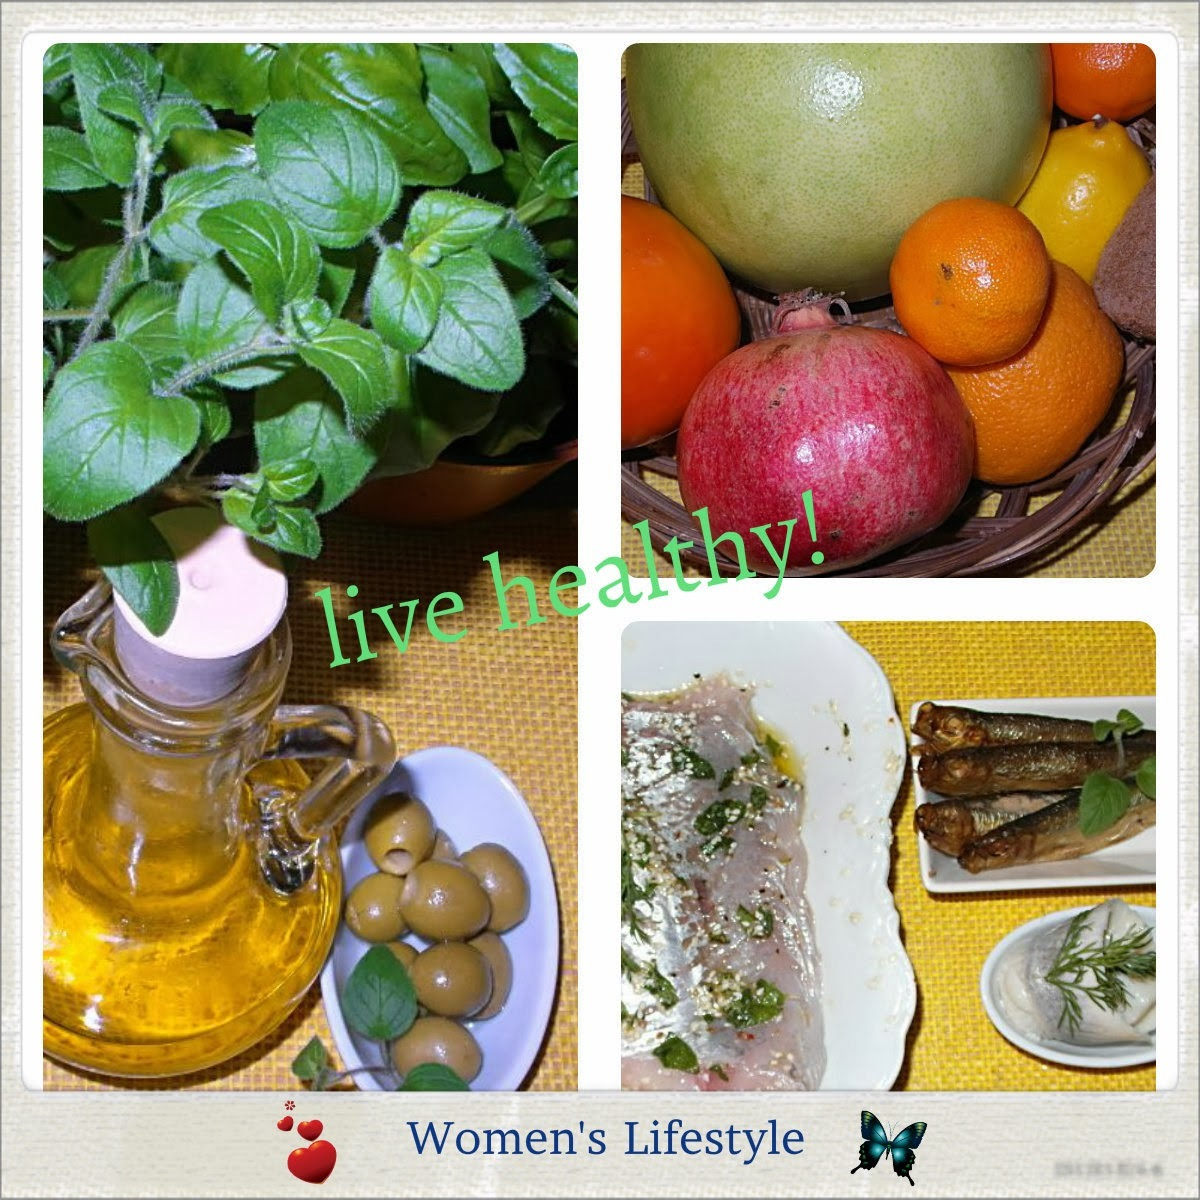 Women's Lifestyle - Eat healthy!